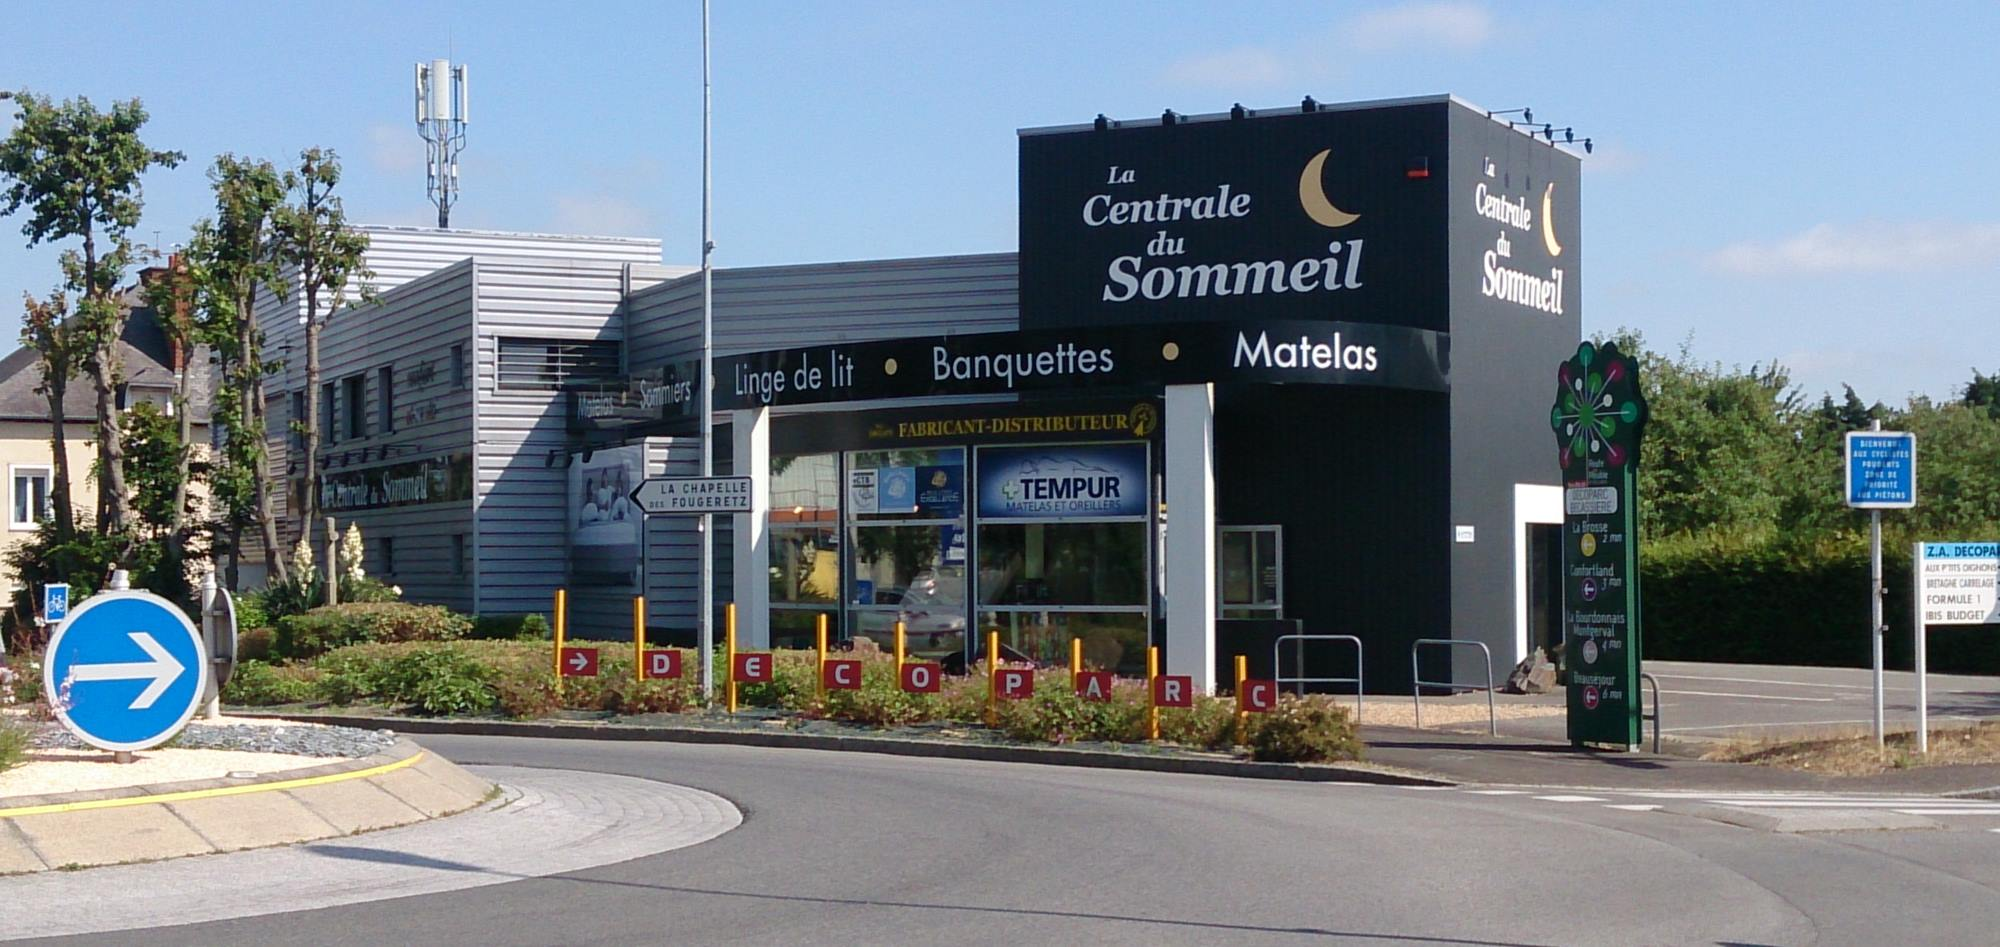 magasin-centrale-sommeil2